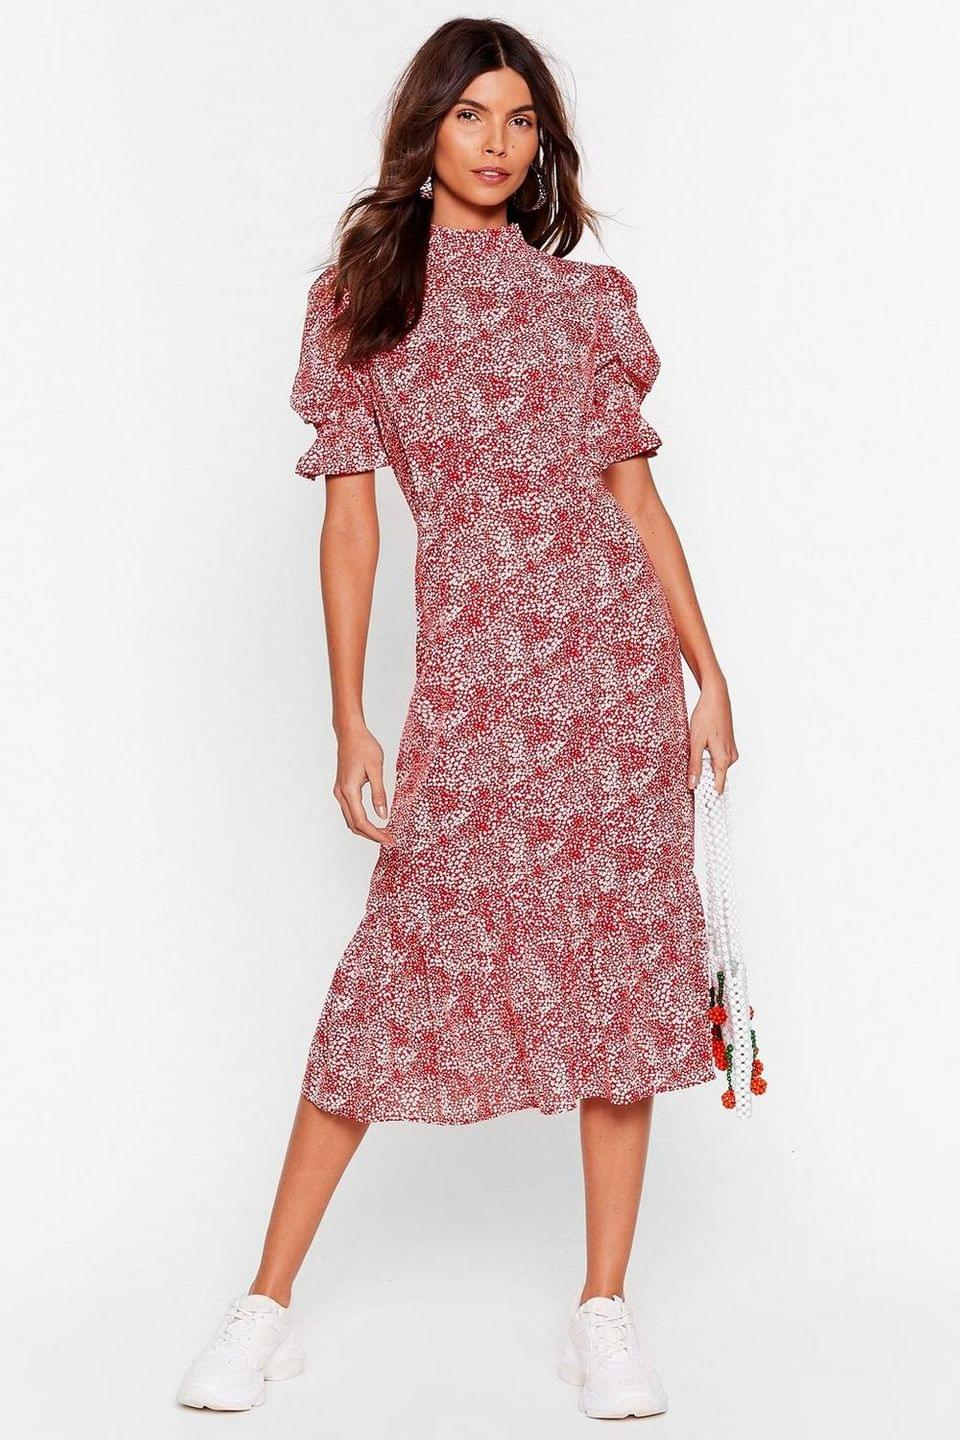 Women's Ready for Golden Hour Floral Midi Dress